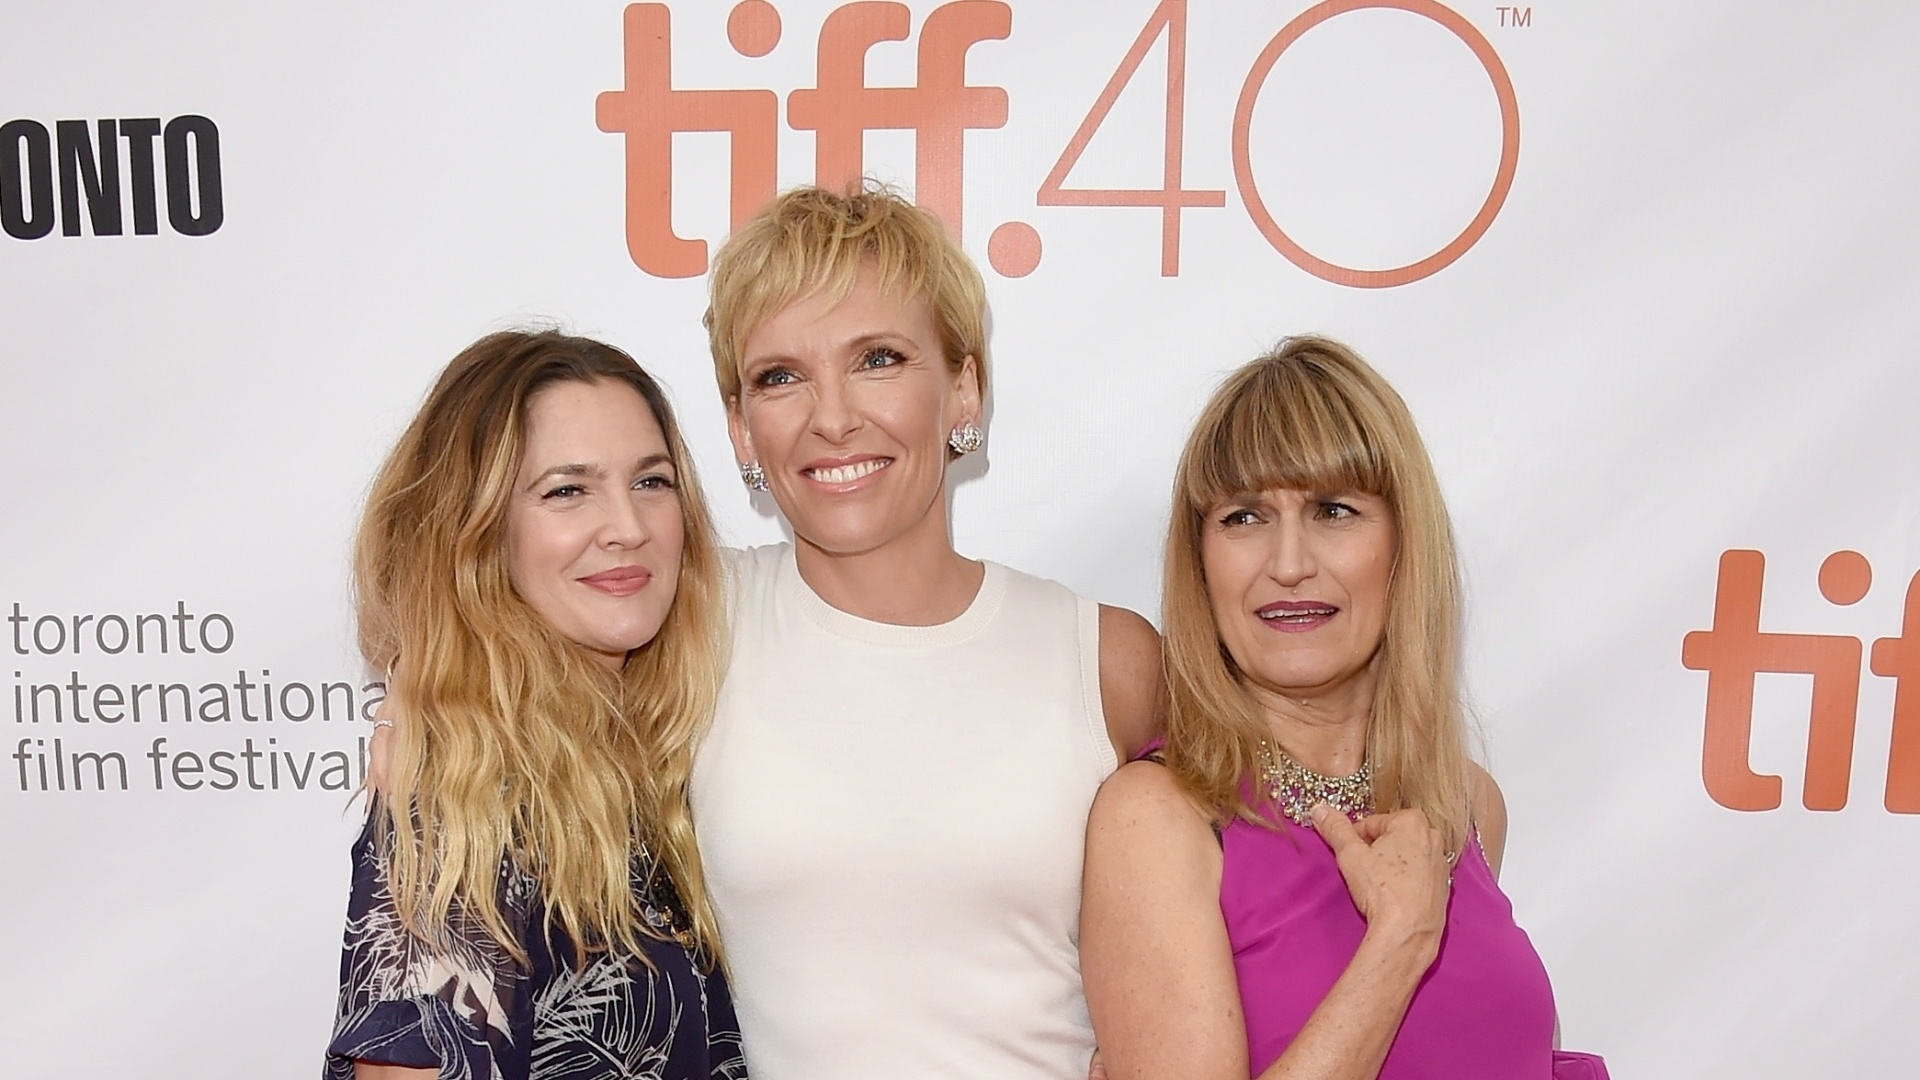 12.set.2015 - As atrizes Drew Barrymore e Toni Collette posam com Catherine Hardwicke, diretora de